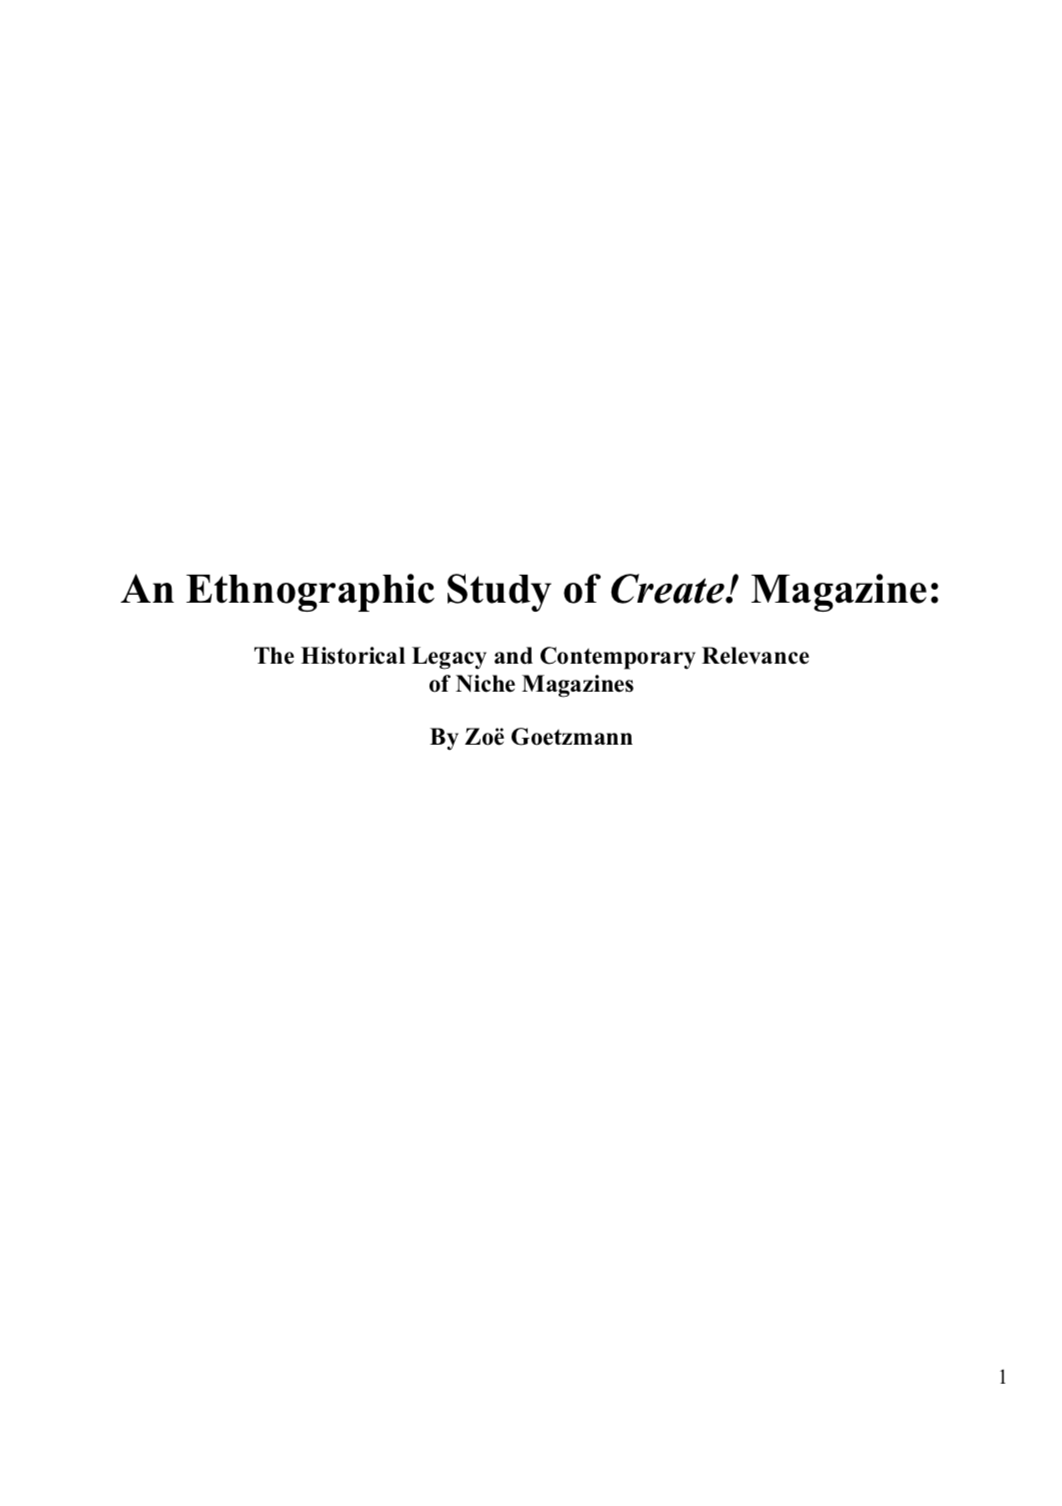 An Ethnographic Study of Create! Magazine: The Historical Legacy and Contemporary Relevance of Niche